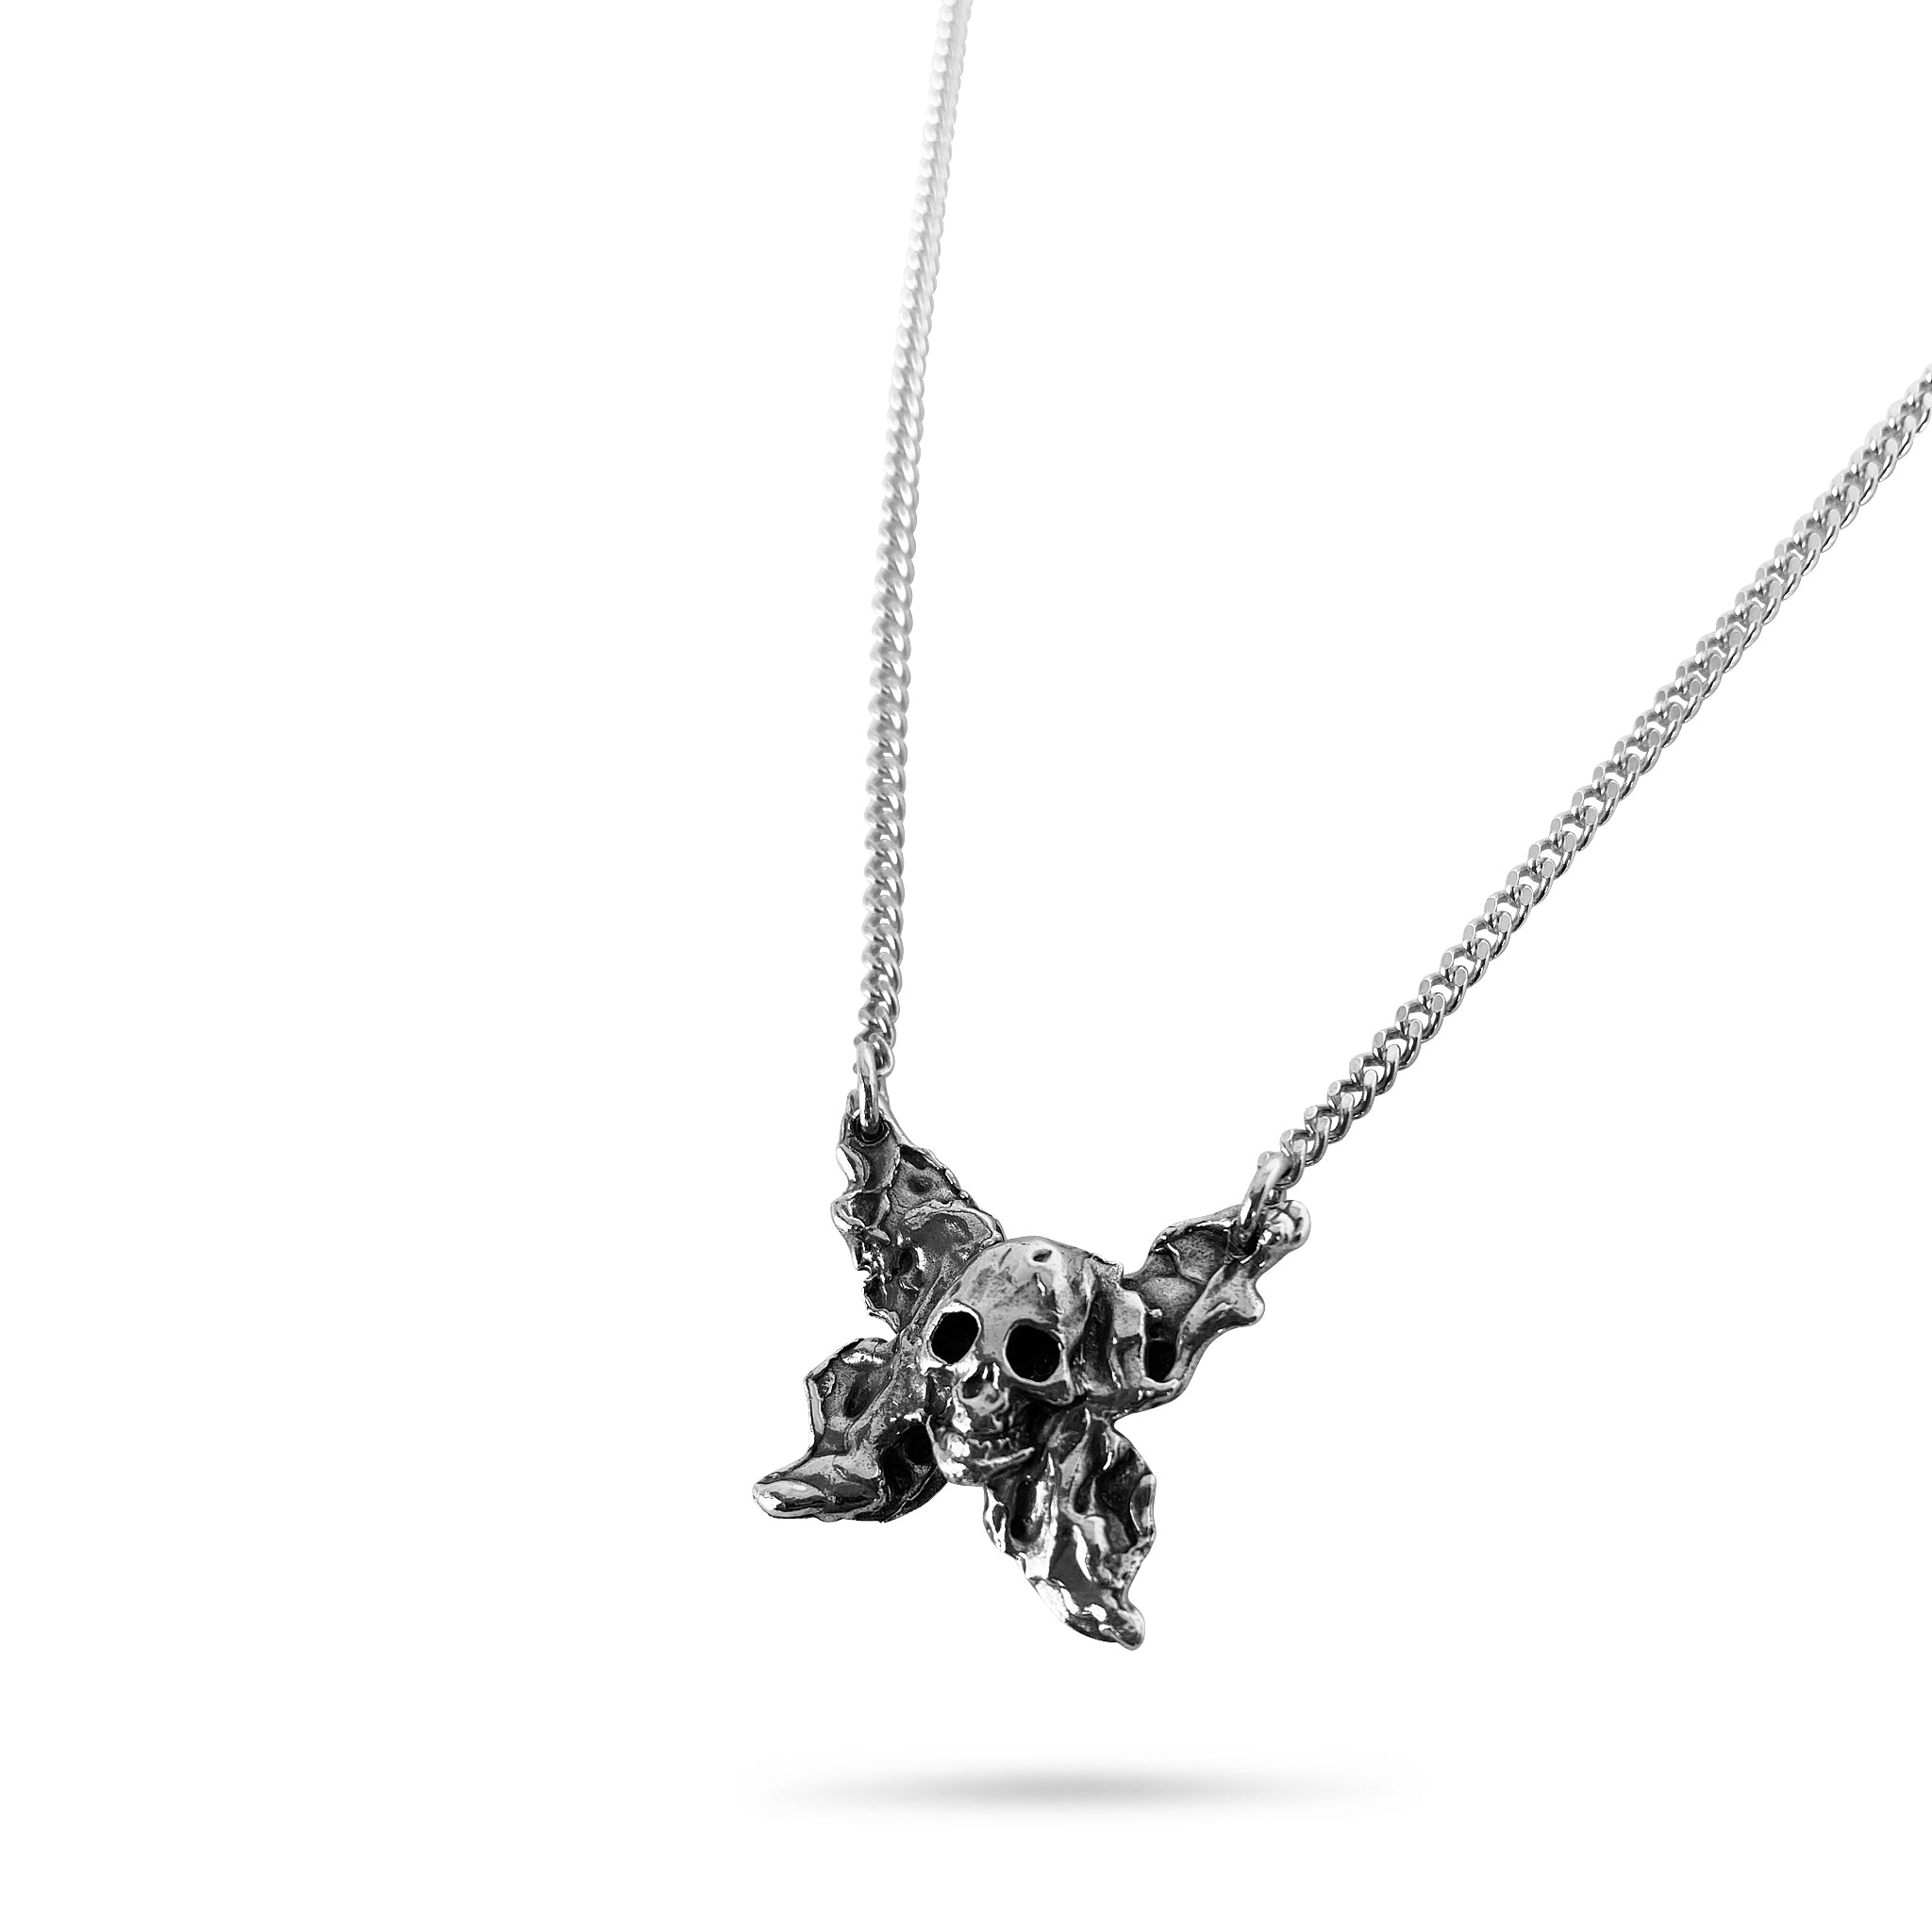 Flutterdeath Skull Necklace